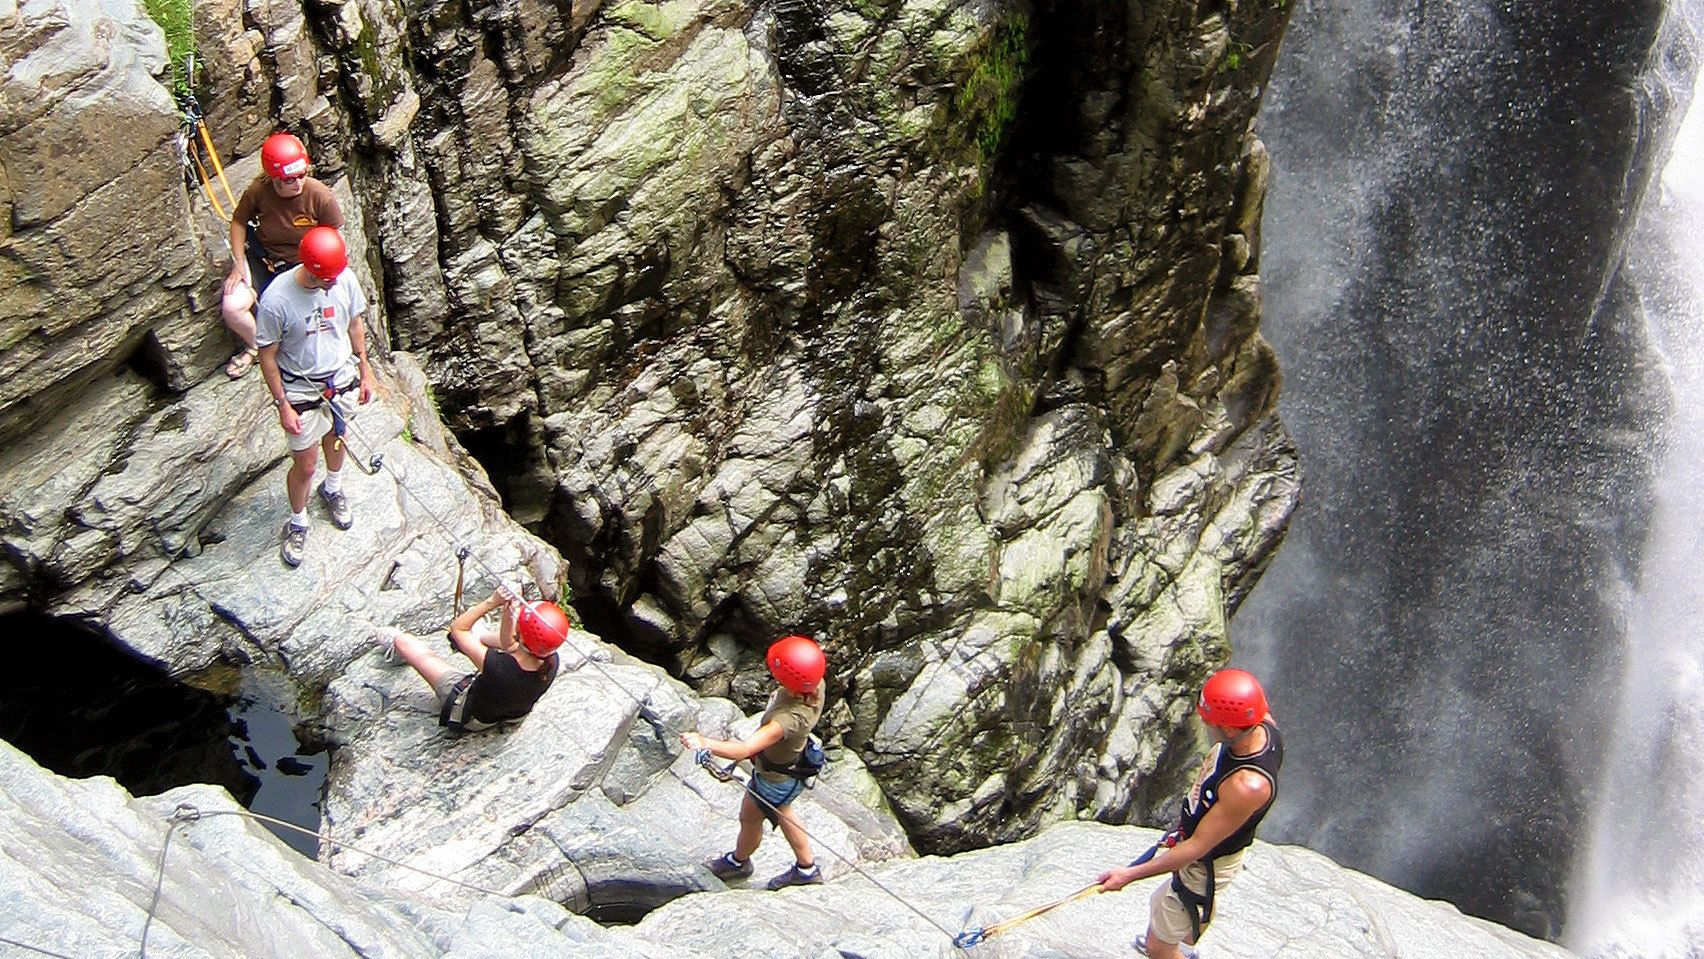 Hikers traversing the rocks of Canyon Sainte-Anne